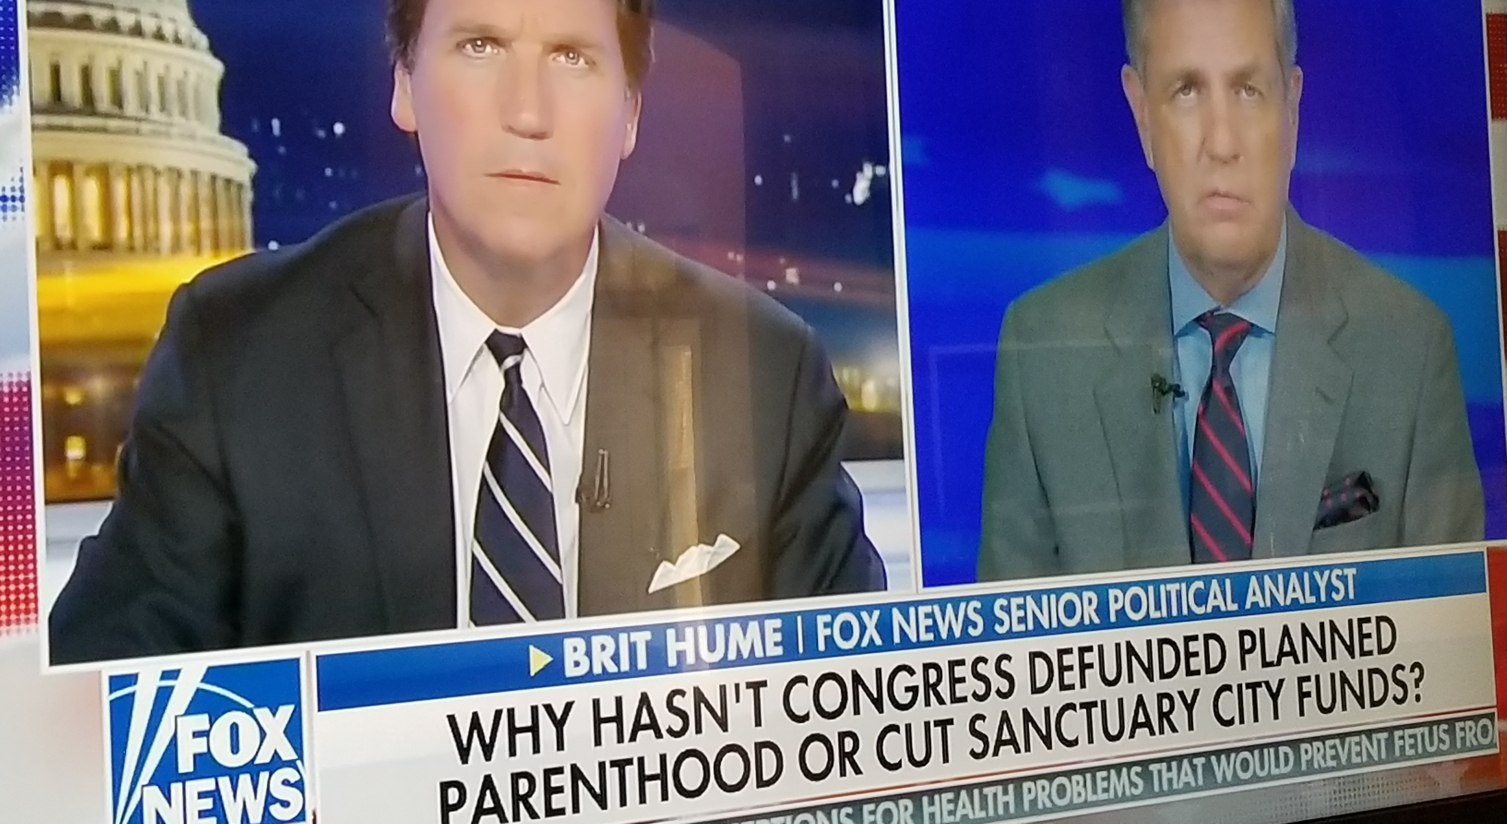 FNC: Pres. Trump and Republican Congress still funding PP at Obama level of $500M a year